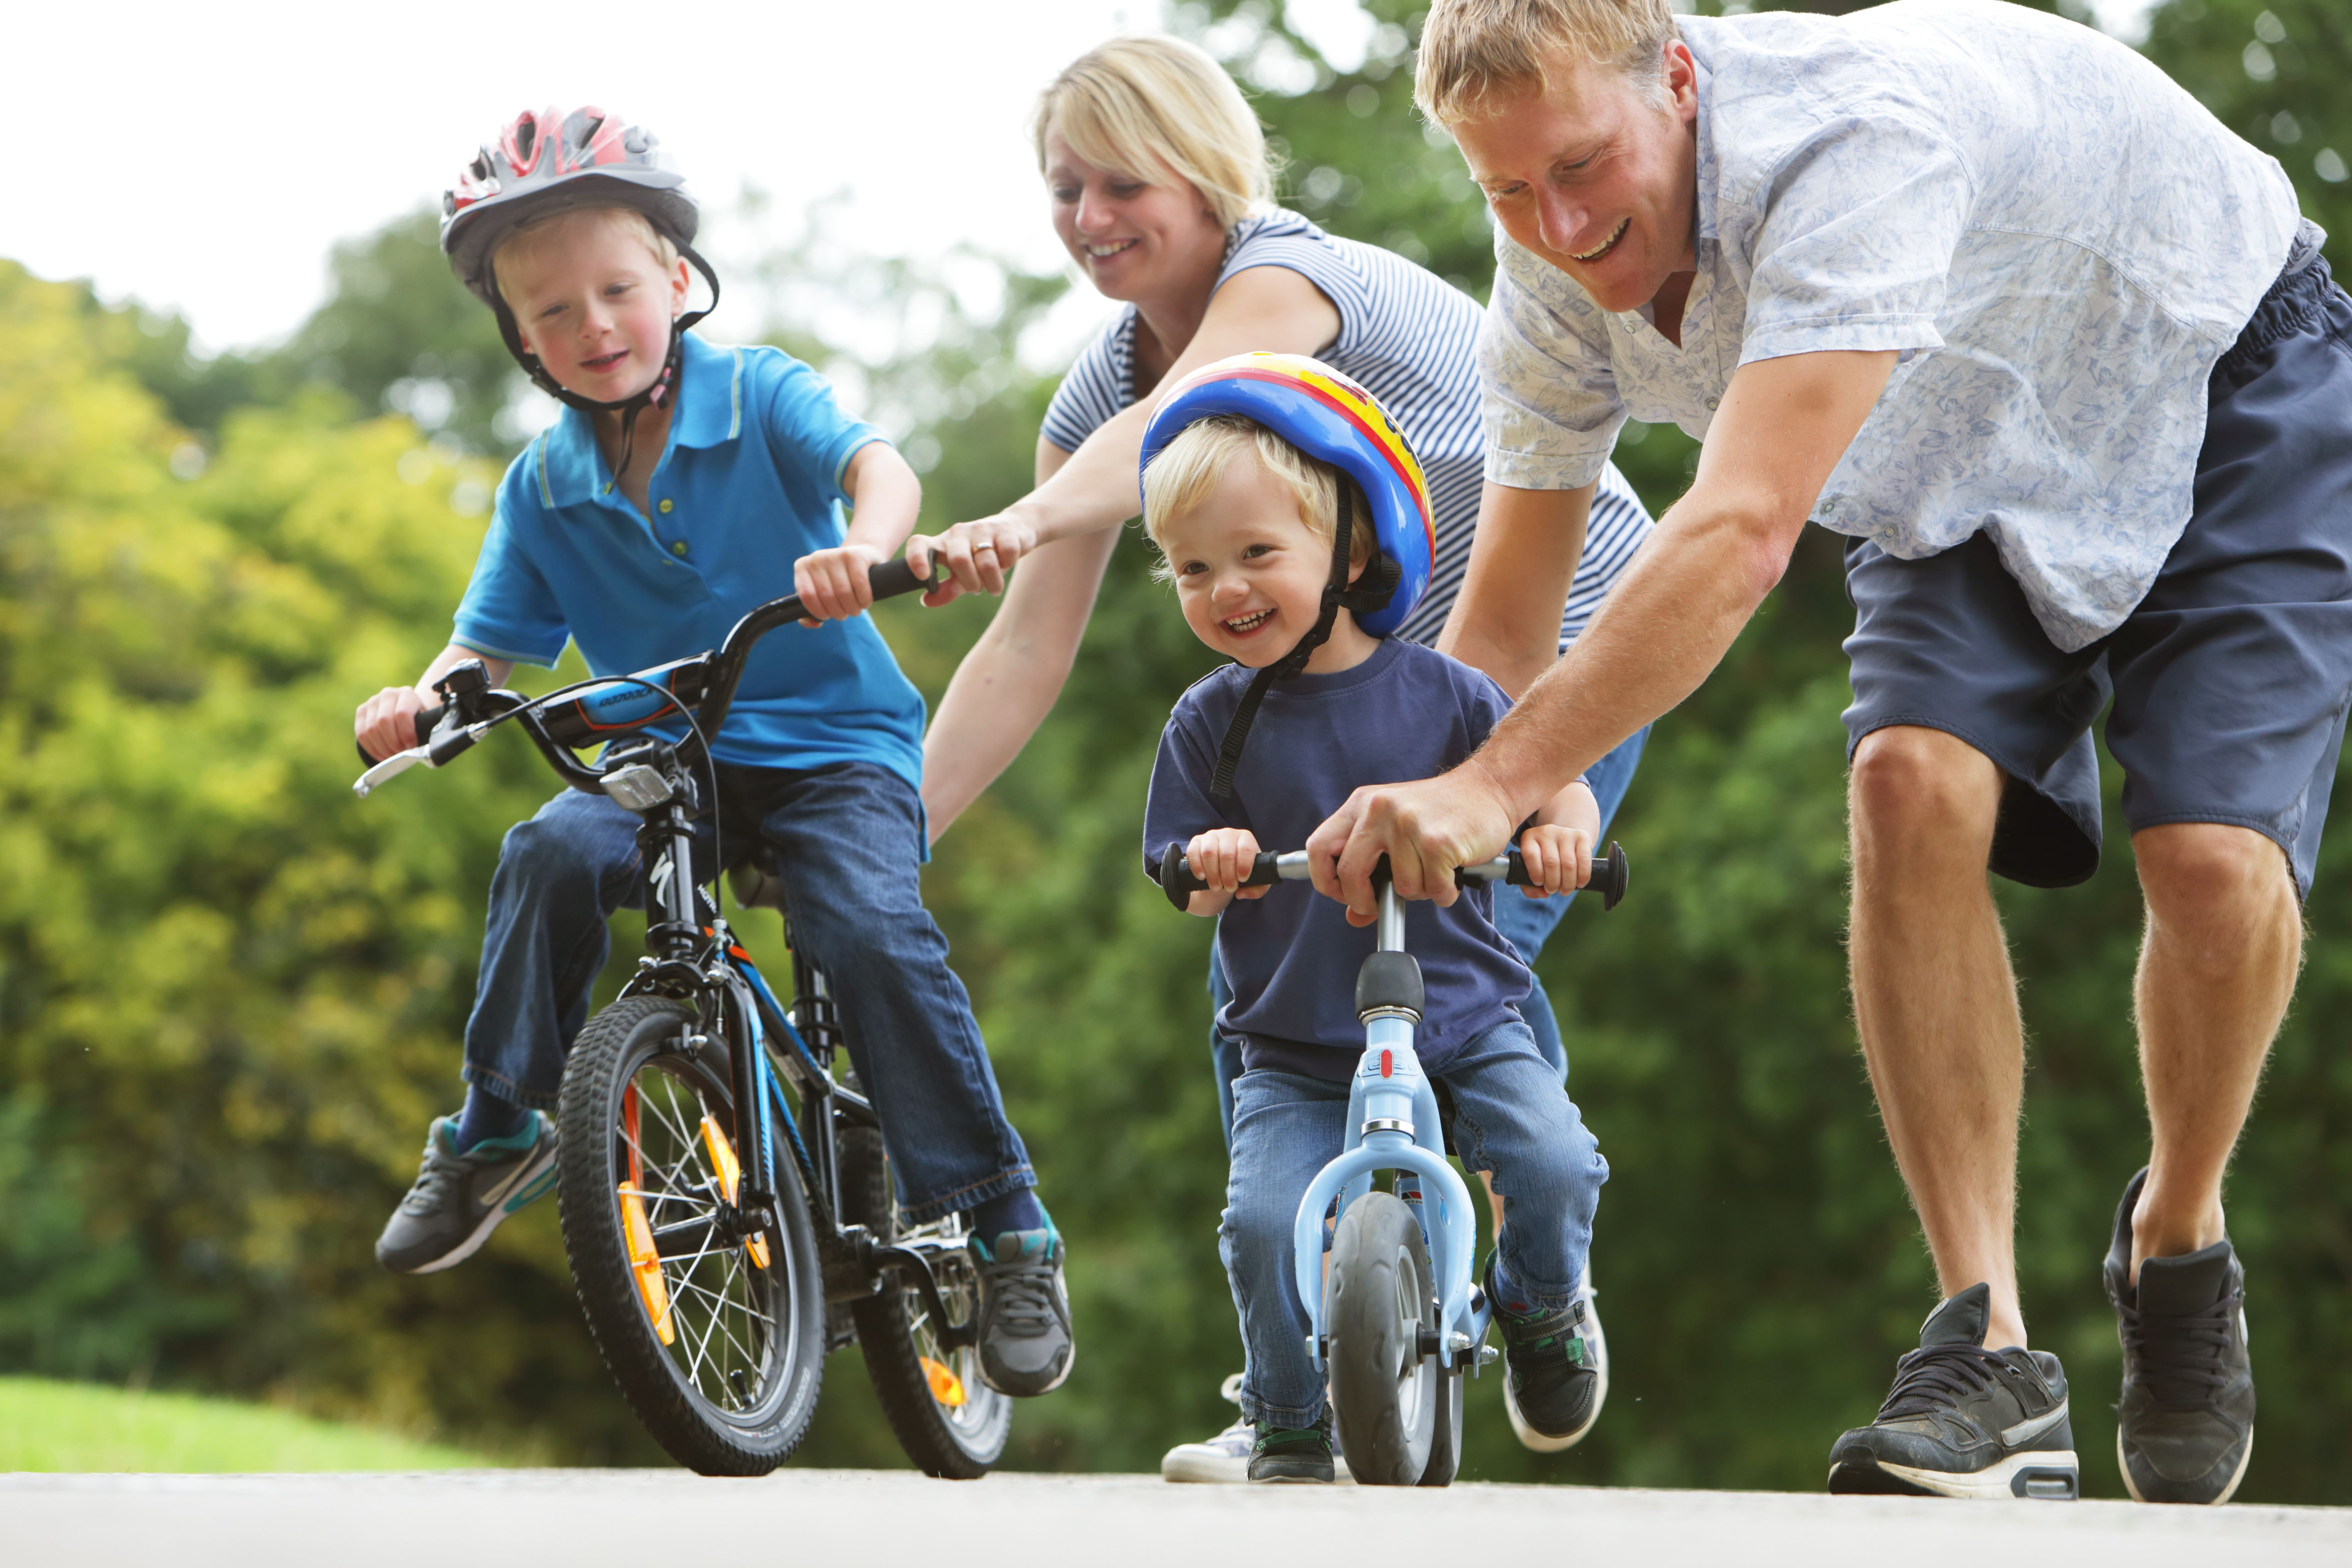 Parent S Guide To Outdoor Ride On Toys And Bicycles